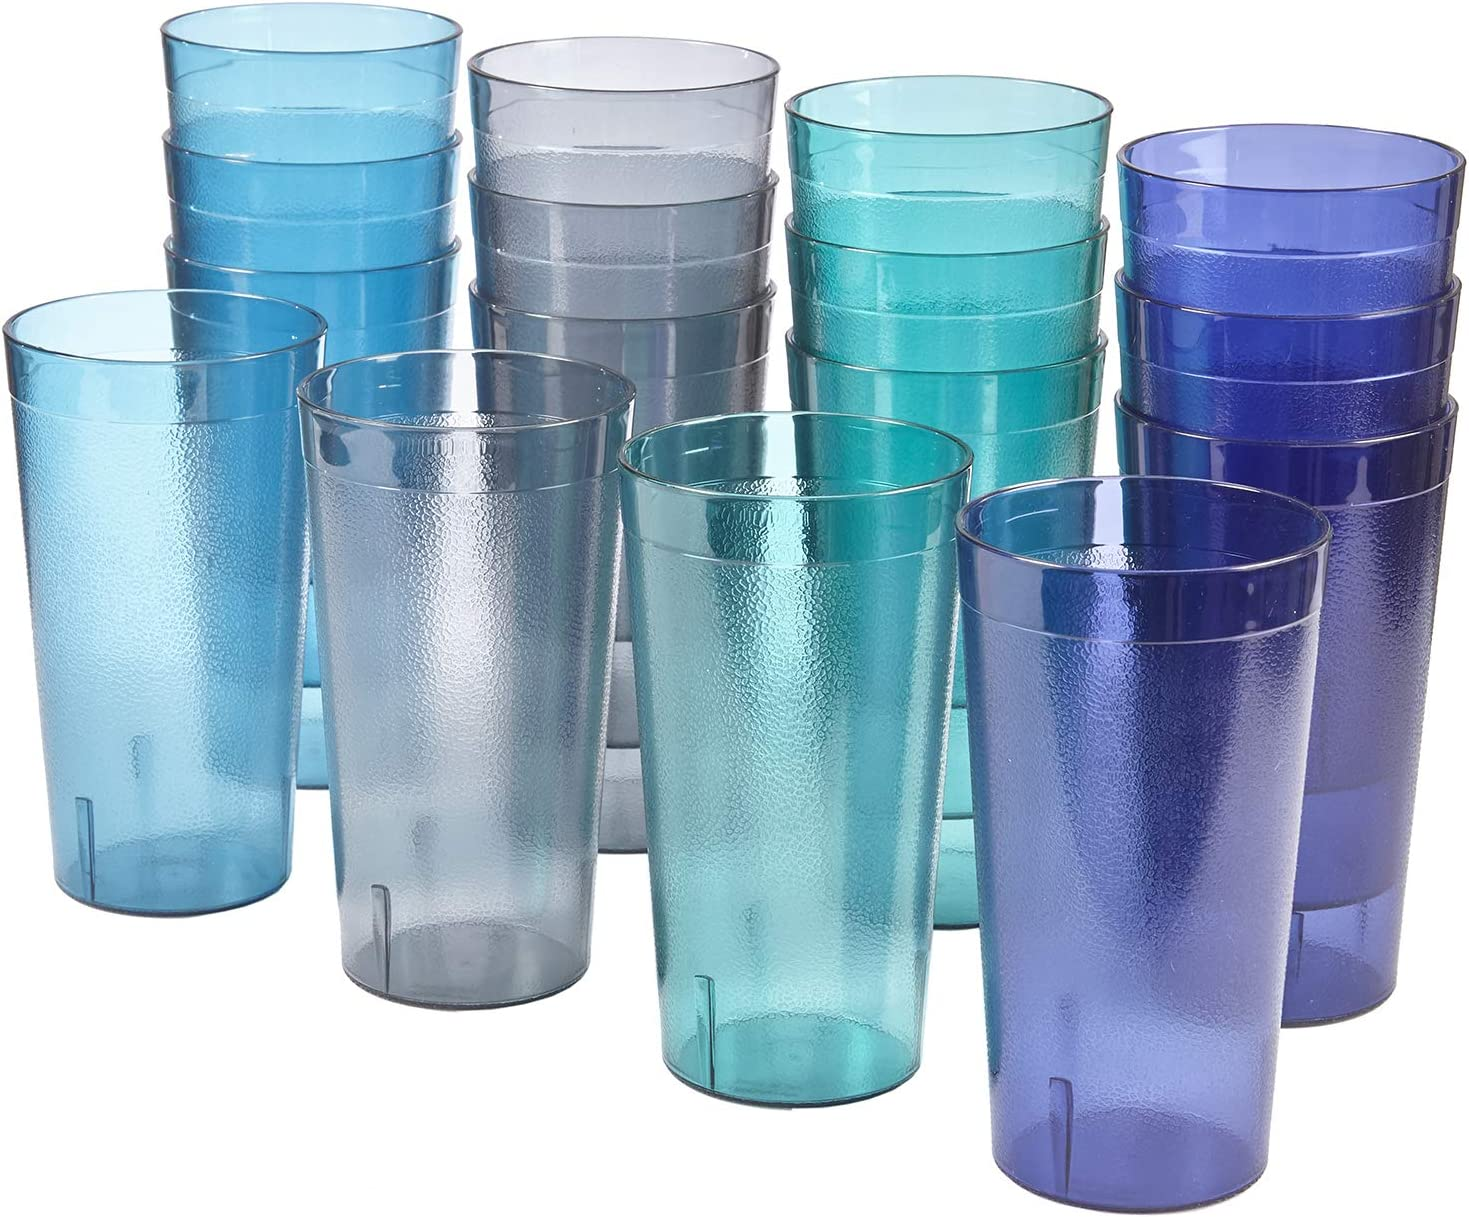 Cafe 20-ounce Break-Resistant Plastic Restaurant-Style Beverage Tumblers | Set of 16 in 4 Coastal Colors